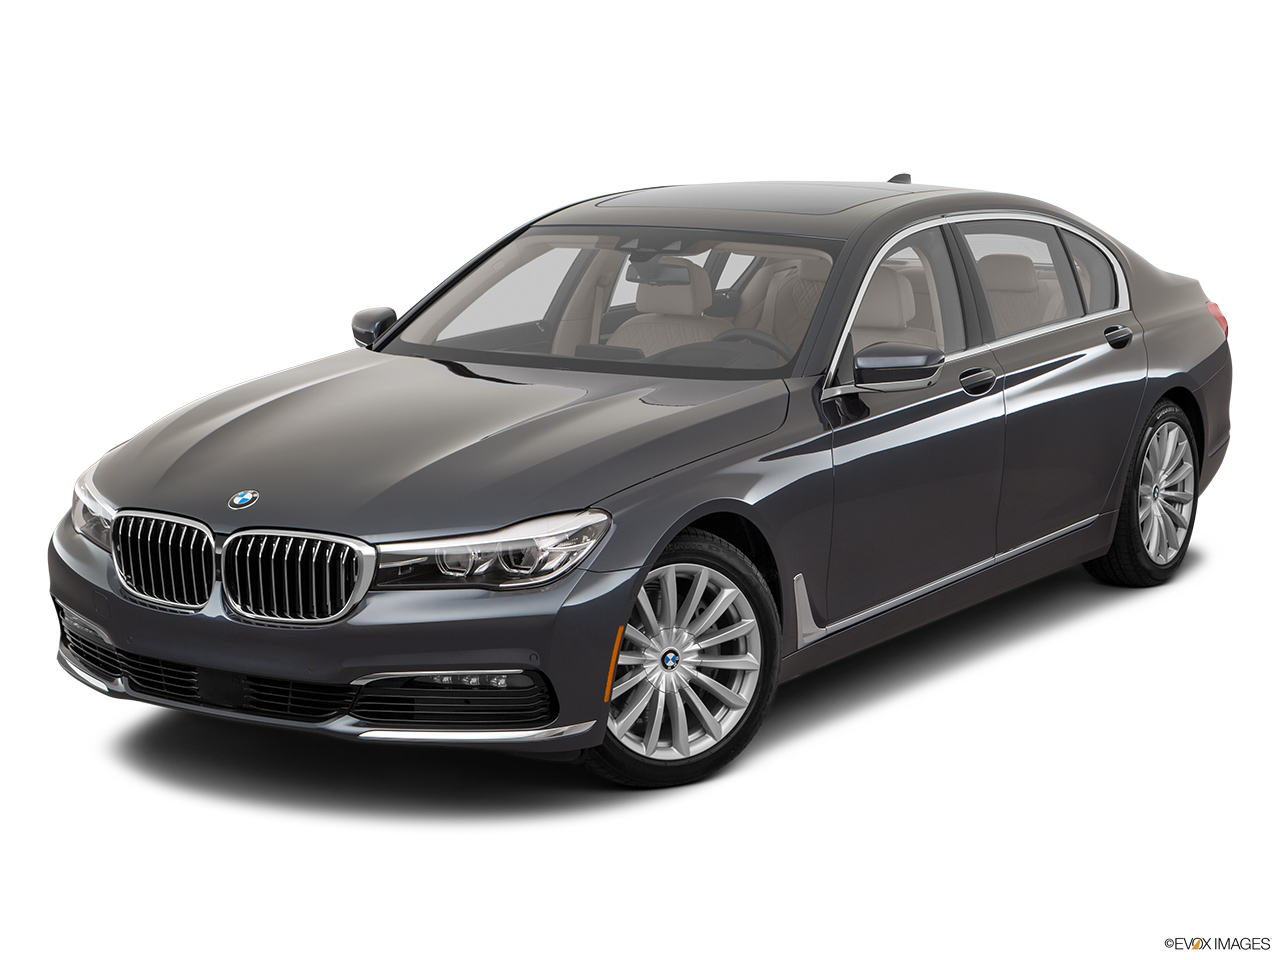 Bmw 7 Series 2017 730li In Uae New Car Prices Specs